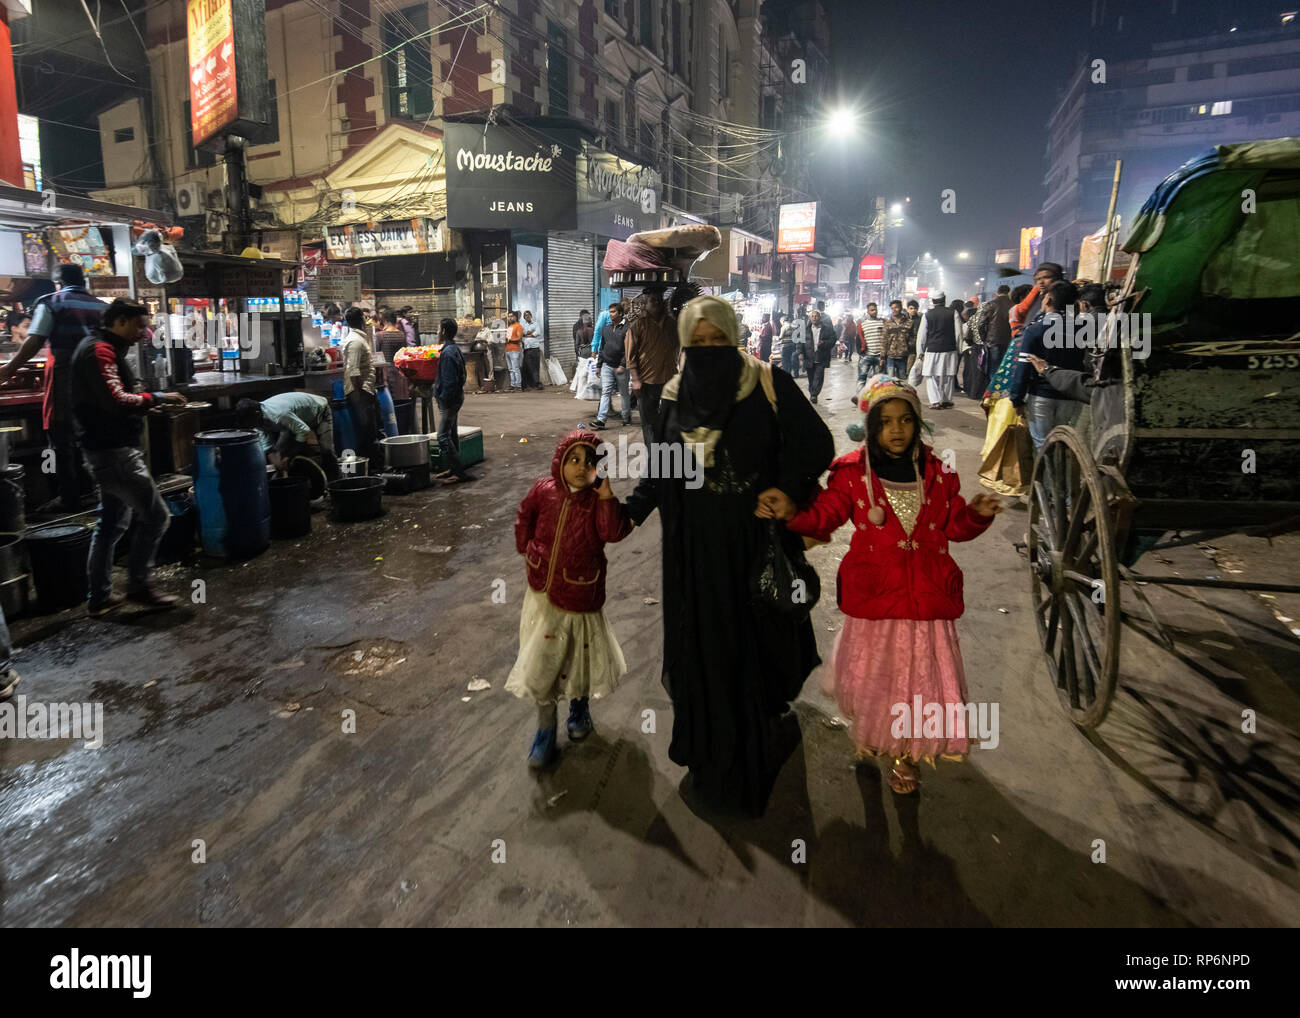 Typical atmospheric busy noisy night time street scene in Kolkata with local people, rickshaws and street food vendors. - Stock Image